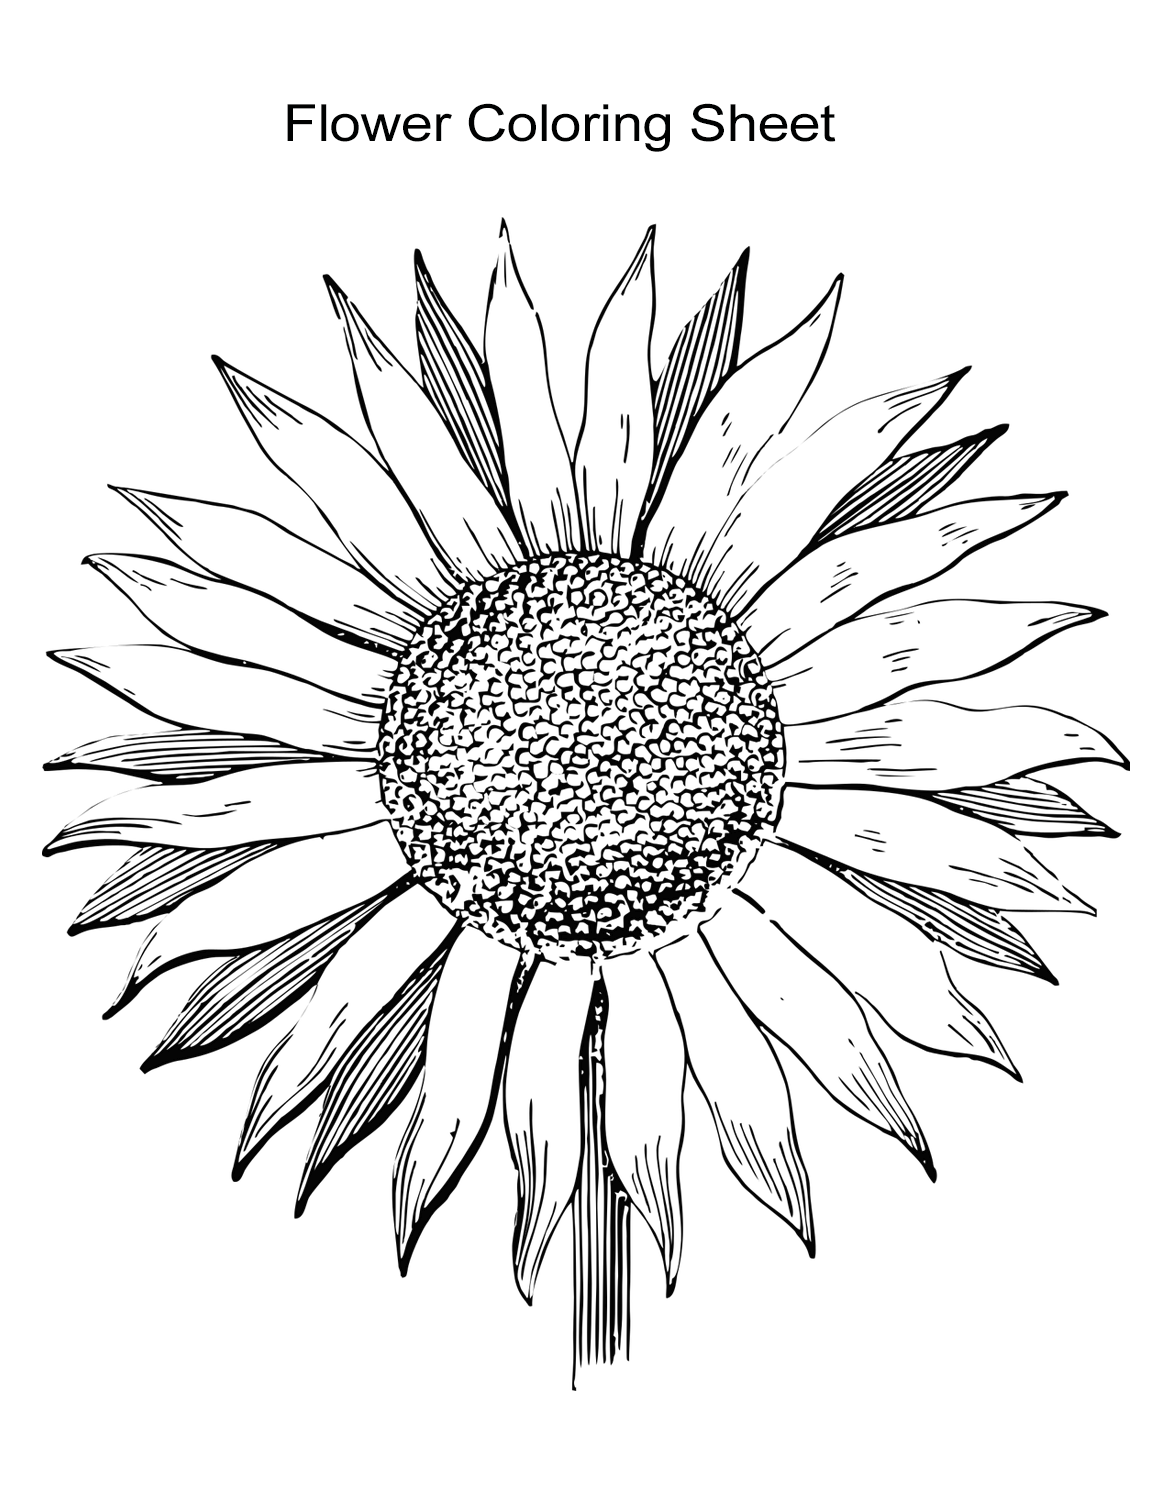 colouring pages for flowers 10 flower coloring sheets for girls and boys all esl colouring flowers pages for